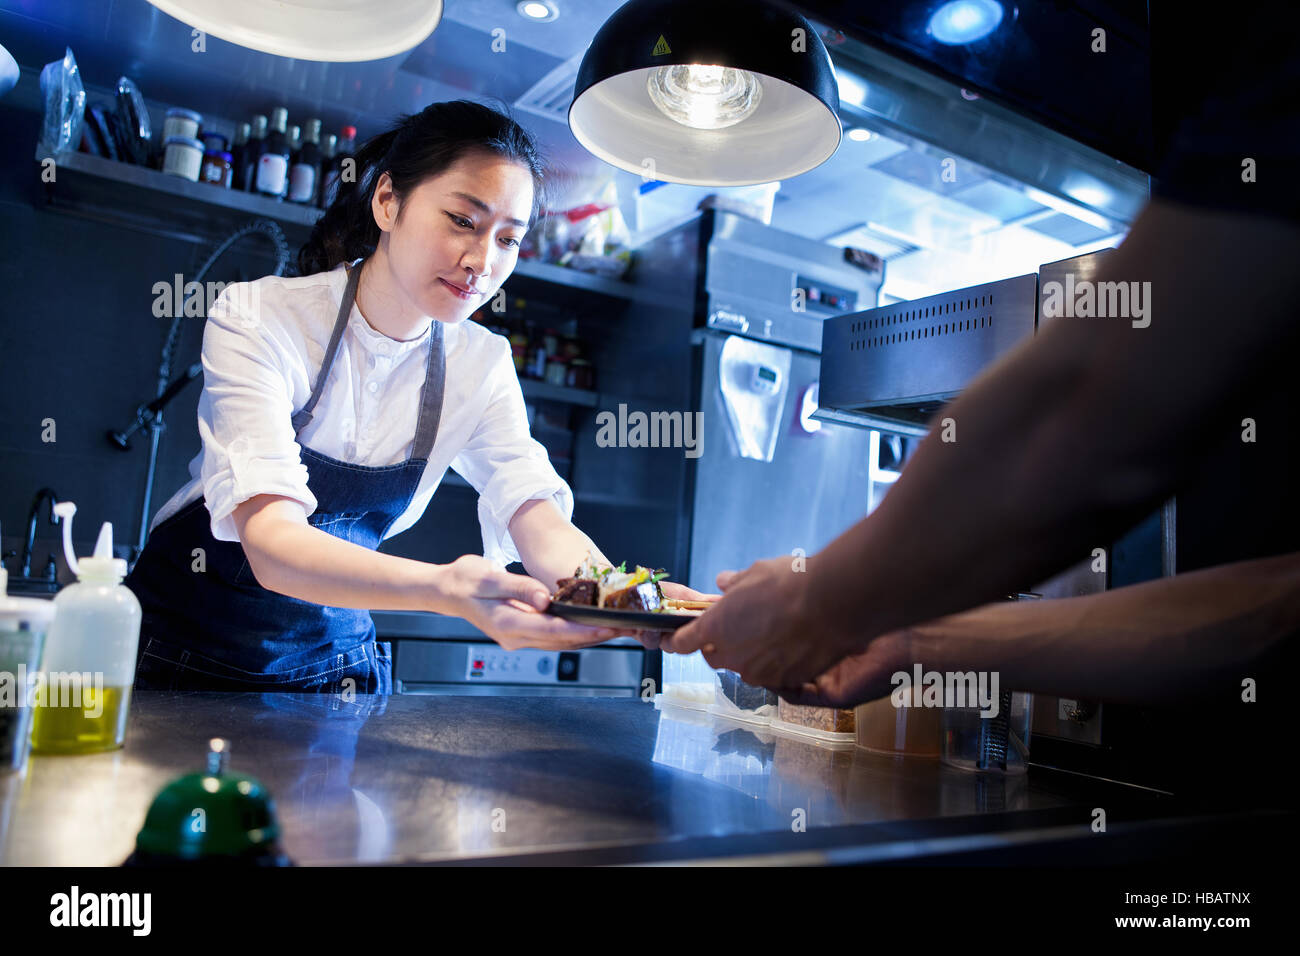 Chef handing prepared meal to waiter - Stock Image